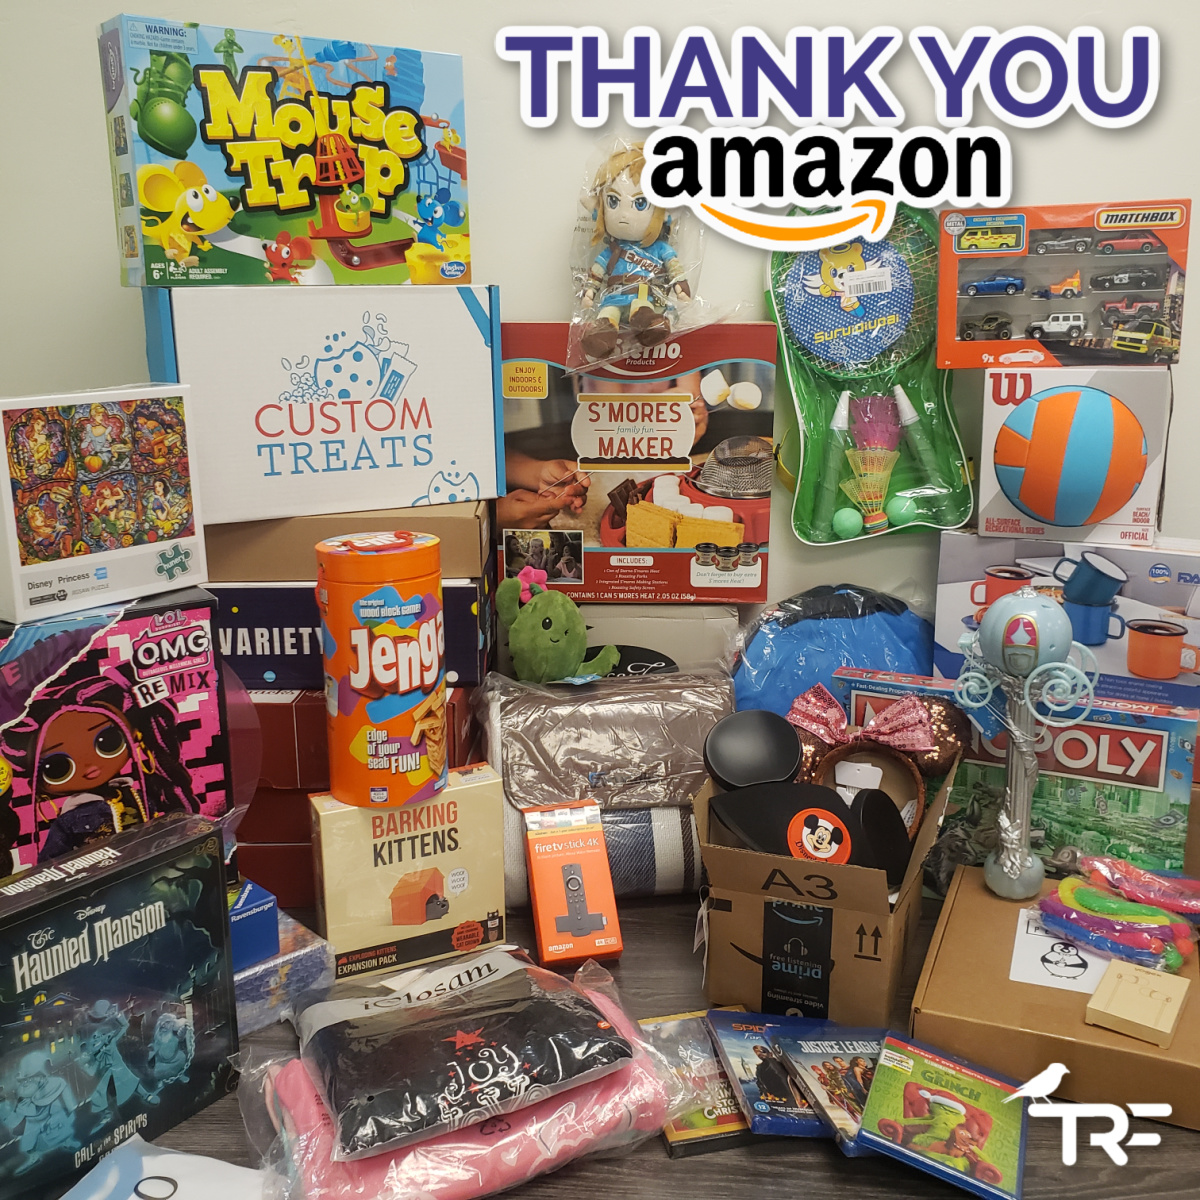 💜💜💜 So thankful to our friends at @Amazon.   They surprised us by granting SO many pediatric cancer family wishes by fulfilling much of our holiday wish list: . There are a few things left if you want to help!   #deliveringsmiles #slaycancerwithdragons